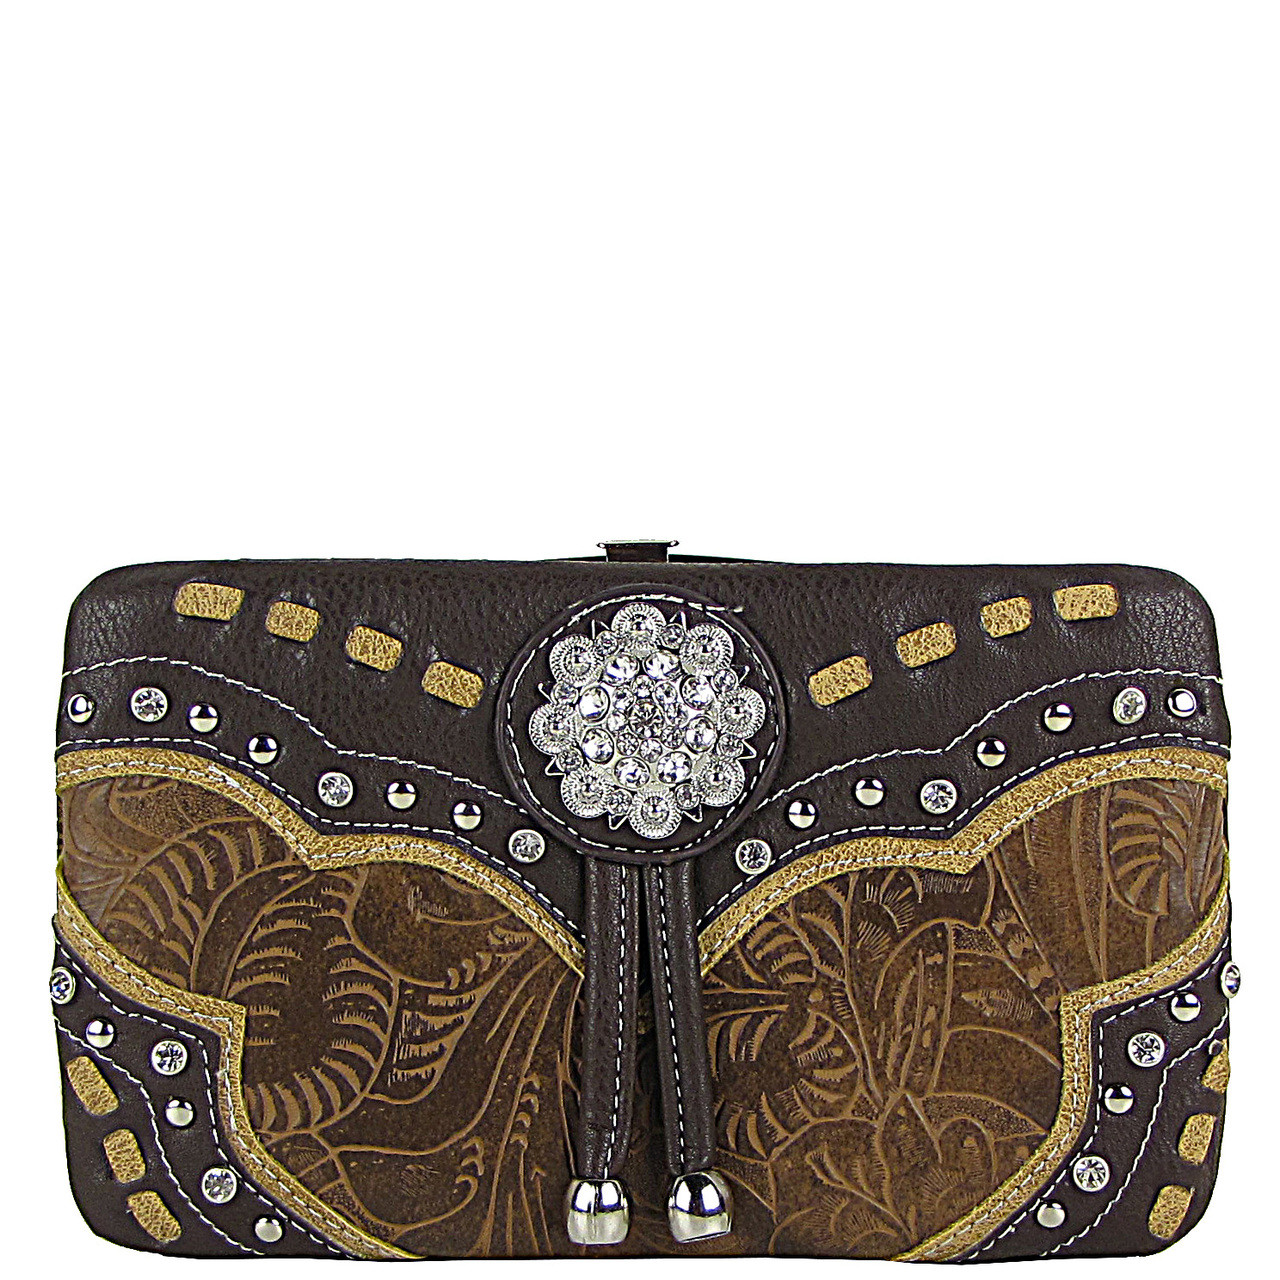 BROWN WESTERN FLOWER RHINESTONE LOOK FLAT WALLET FW2-12100BRN